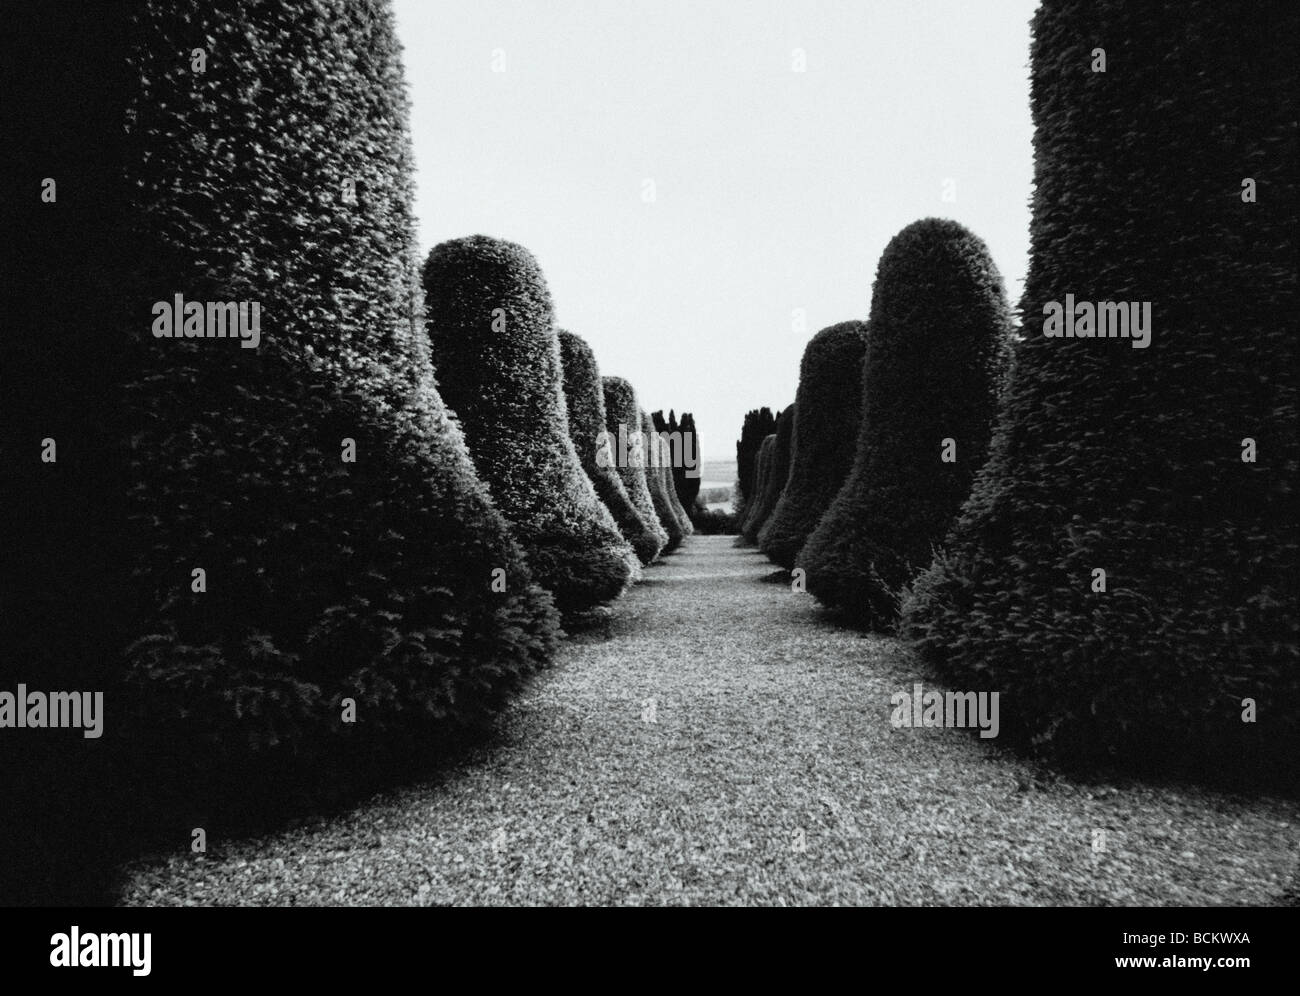 Rows of topiary hedges, b&w - Stock Image